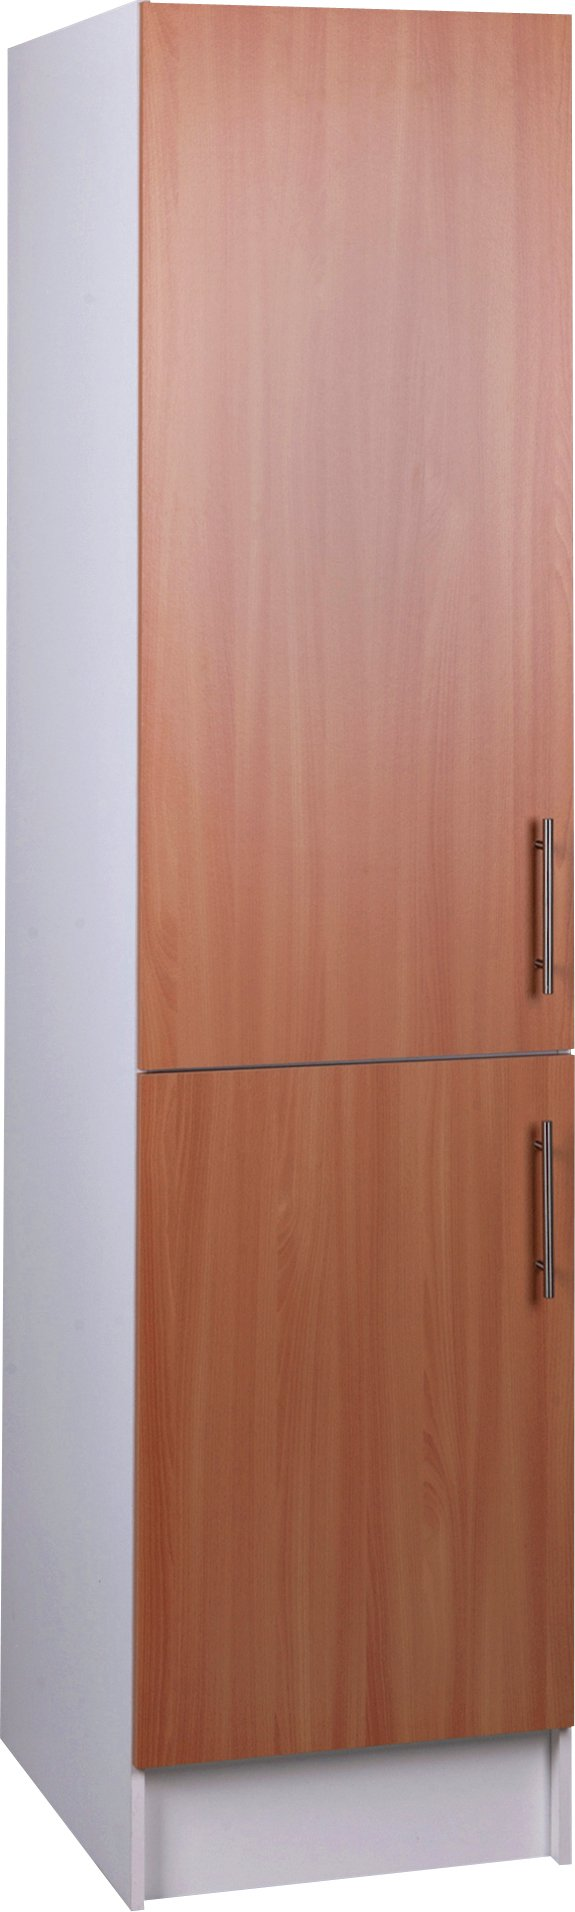 Hygena Athina - 500mm Tall - Fitted - Kitchen Unit - Beech